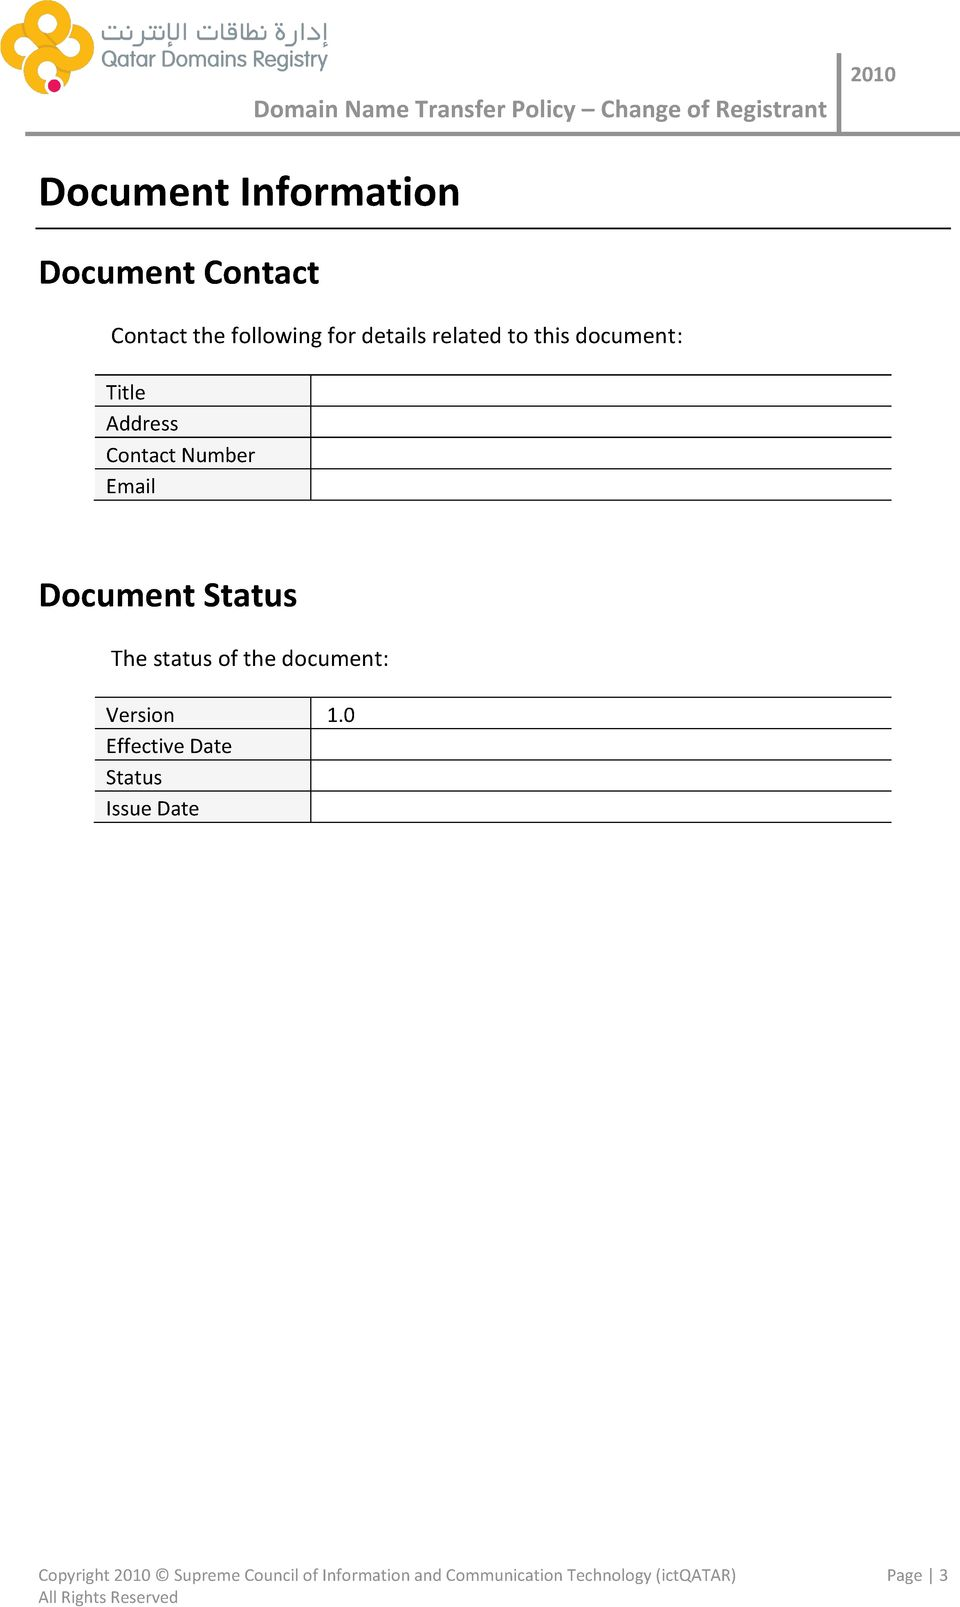 The status of the document: Version 1.